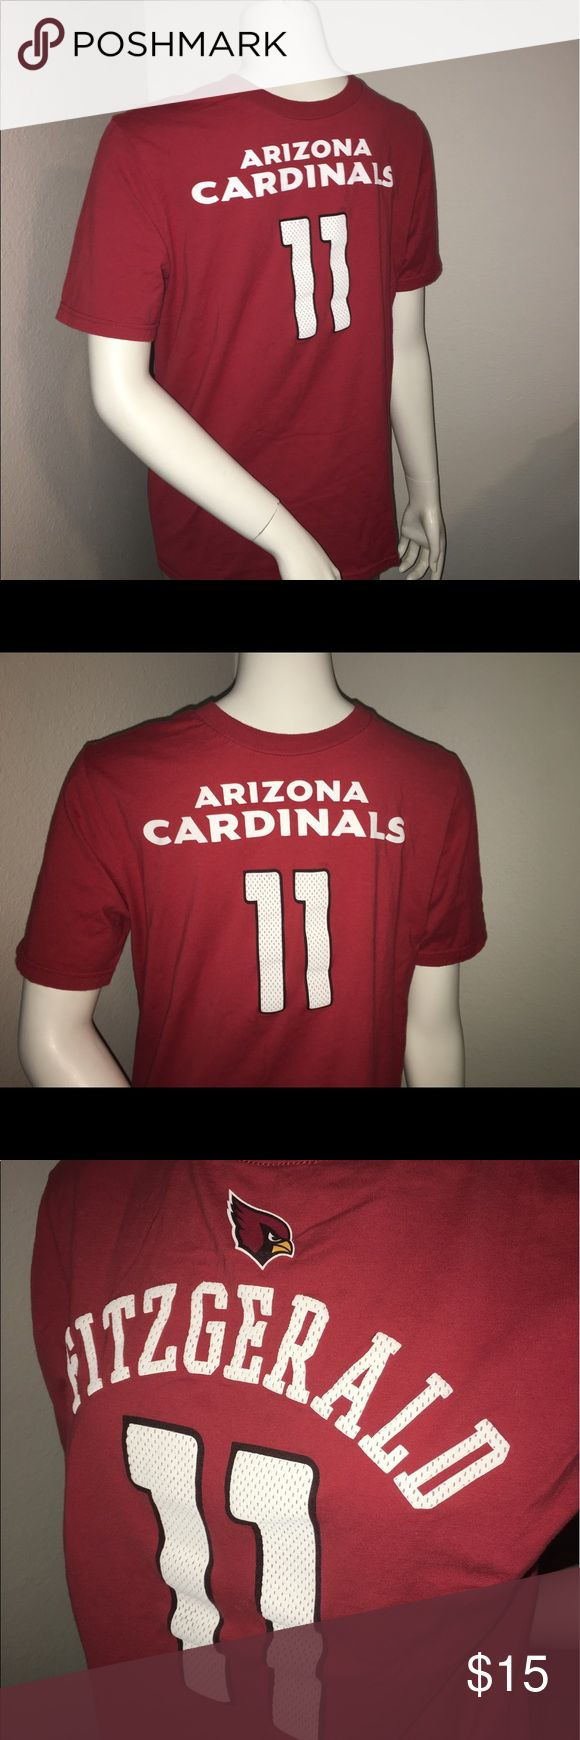 "Youth Larry Fitzgerald jersey style T-shirt sz: XL Thank you for viewing my listing, for sale is a youth/kids, NFL, Arizona Cardinals, Larry Fitzgerald, jersey style, short sleeve, T-shirt.  This is a T-shirt but The screen print looks like a jersey.  Sz: youth XL   If you have any questions or would like additional photos please feel free to ask.  From under one arm to under the other measures appx 19""from the top of the shoulder to the bottom of the shirt measures appx 25"" NFL Shirts…"